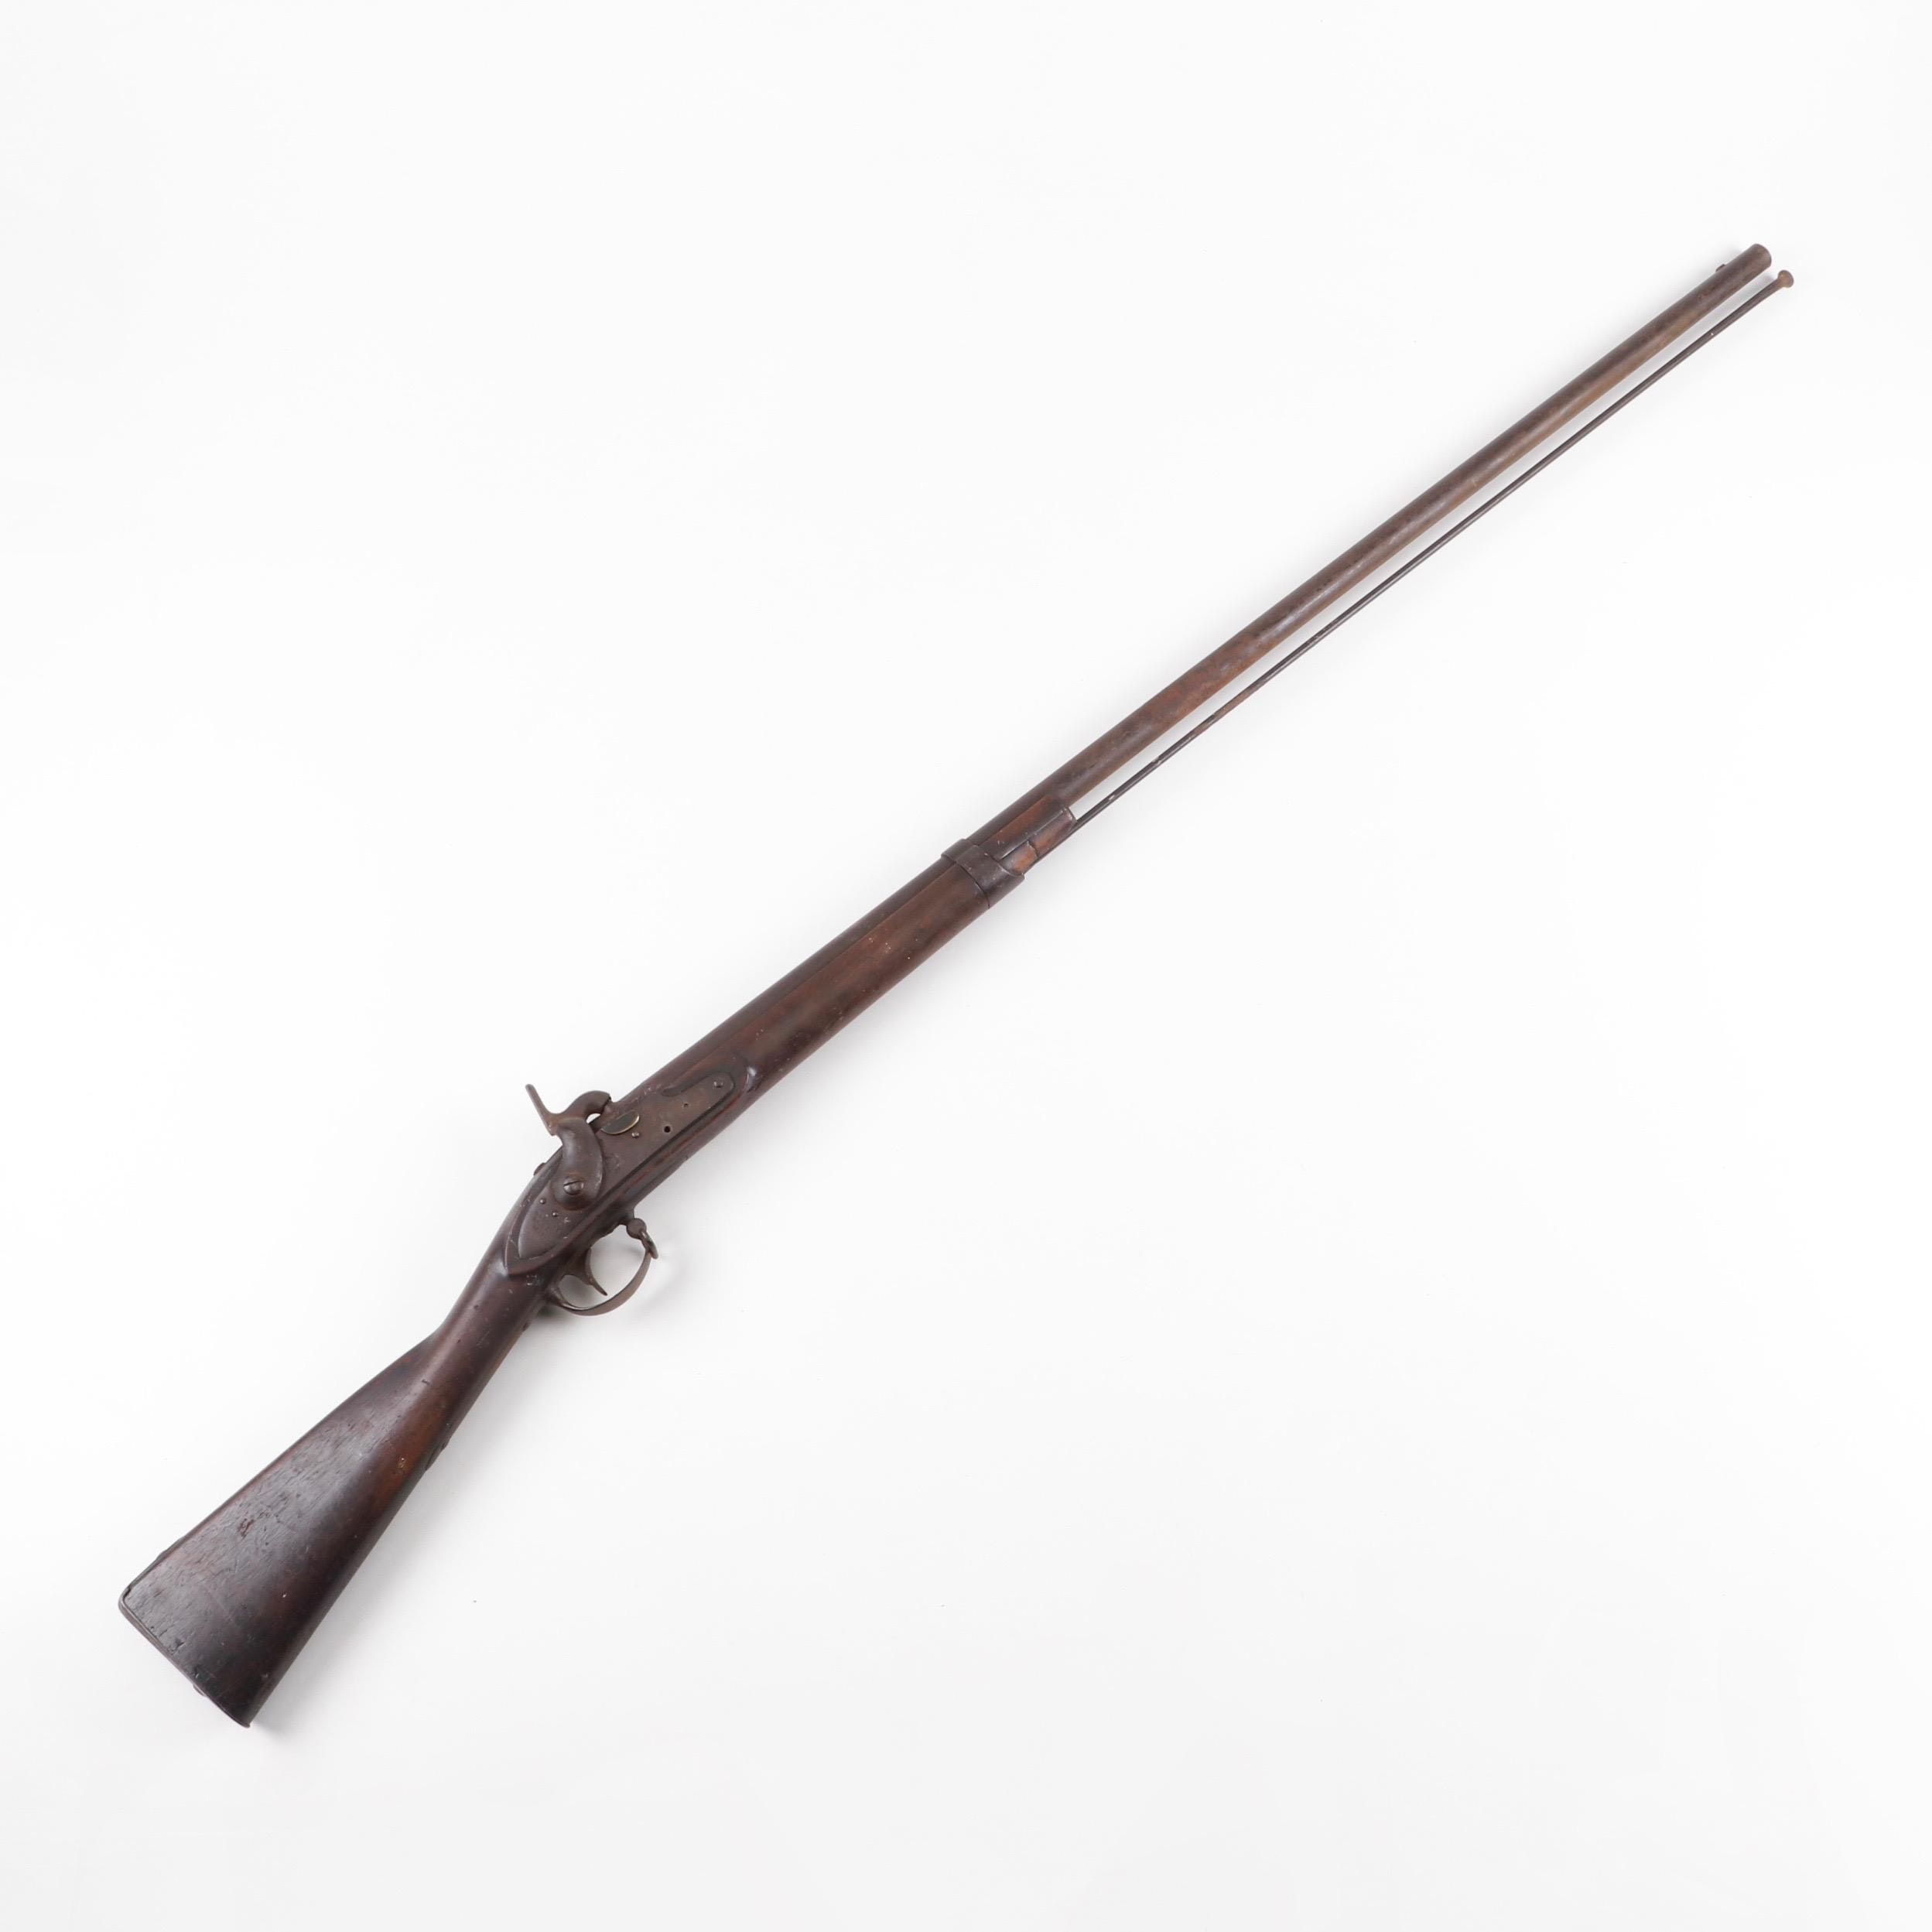 M1812 Harpers Ferry Percussion Conversion Musket, dated 1857